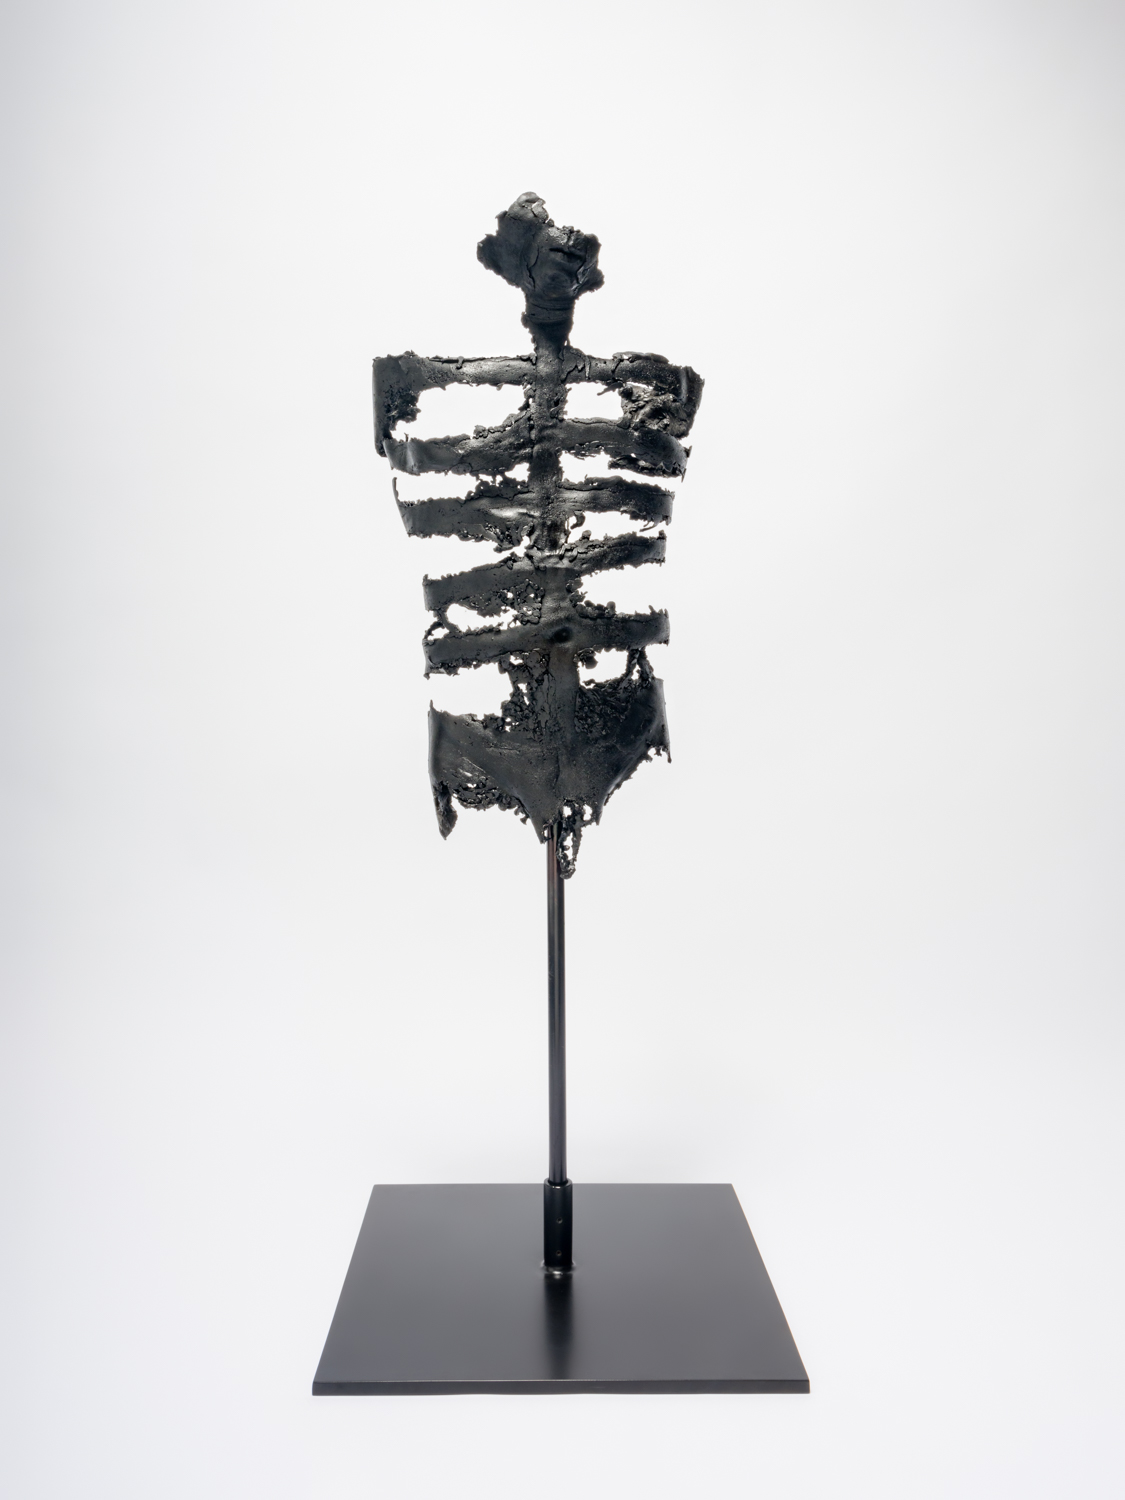 NaotakaHiro Lonesome Tree a, 2018 Bronze, stainless steel rod, steel, black patina 52h x 20w x 12d in NaoH012